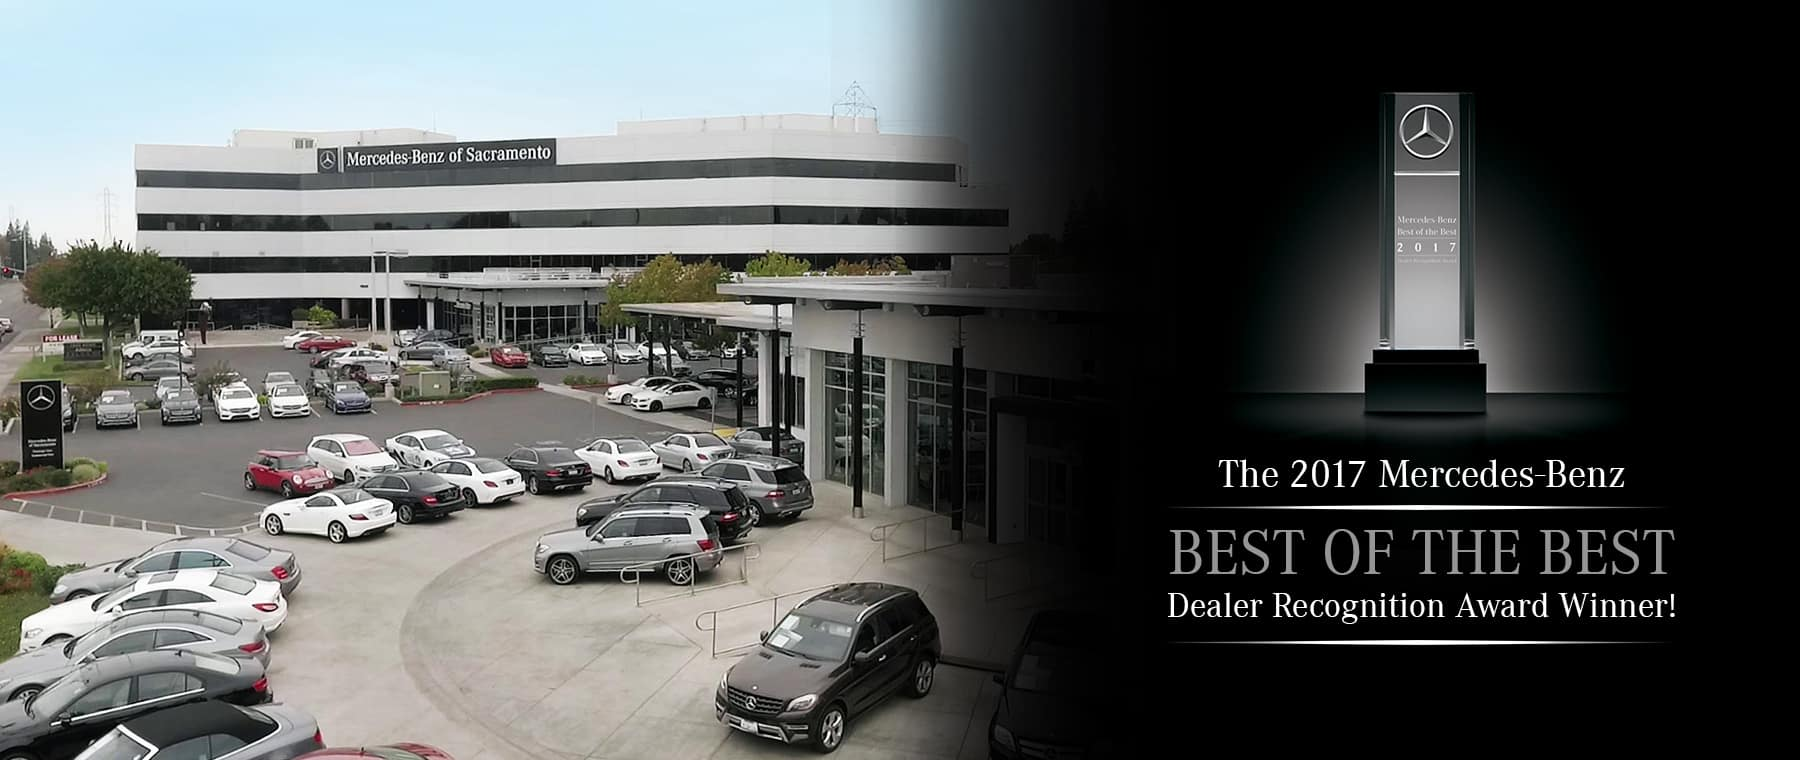 Mercedes benz of sacramento new and pre owned luxury car for Mercedes benz service sacramento